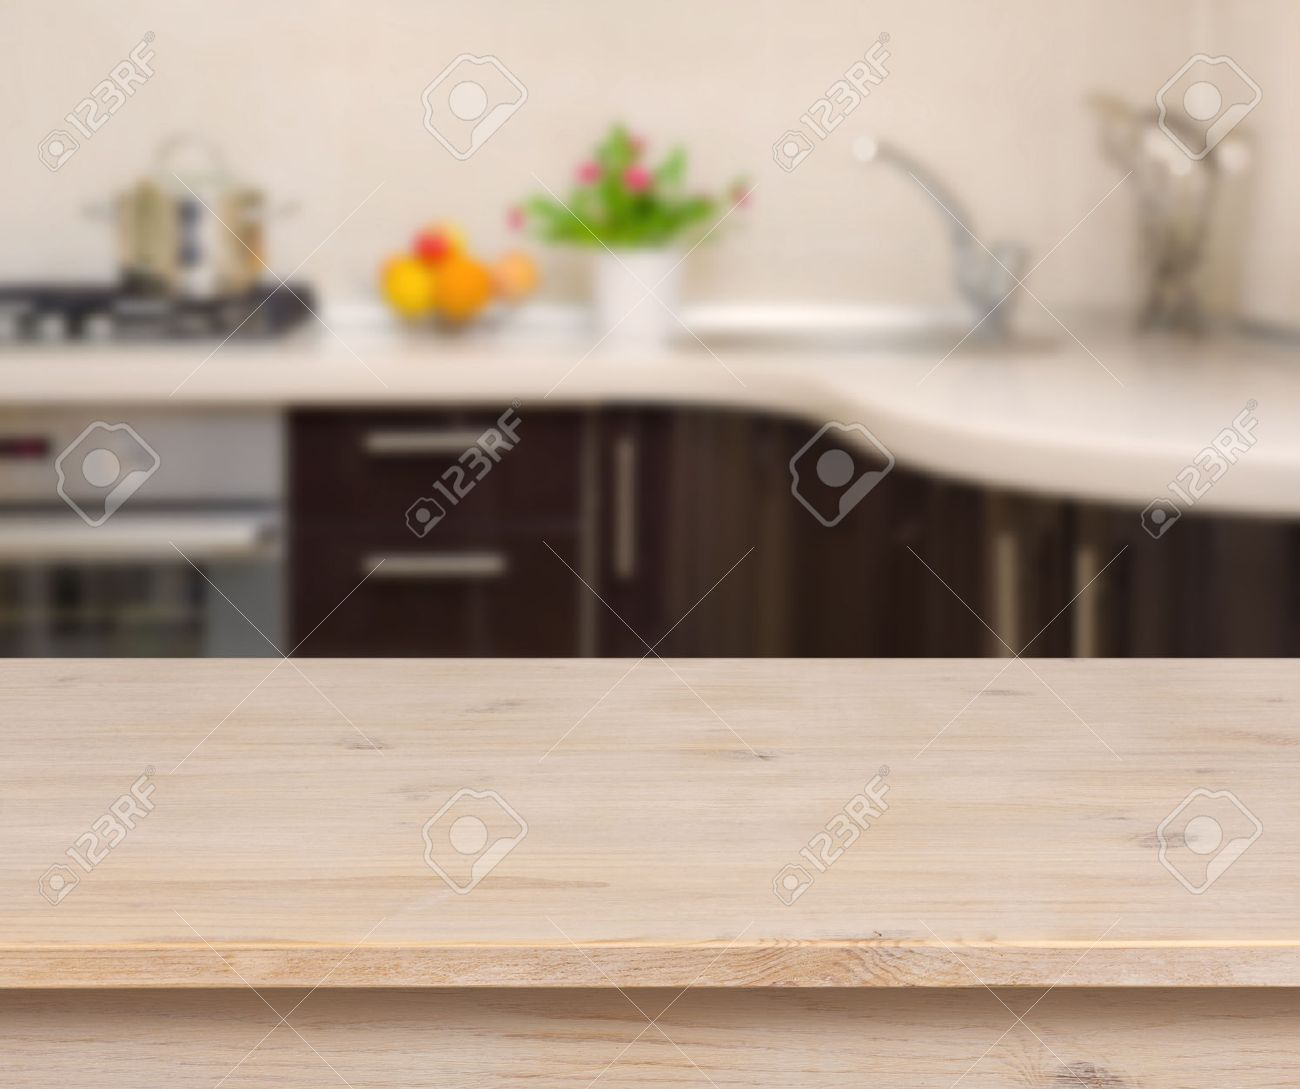 Kitchen Table Background Entrancing Breakfast Table On Kitchen Interior Background Stock Photo Design Inspiration